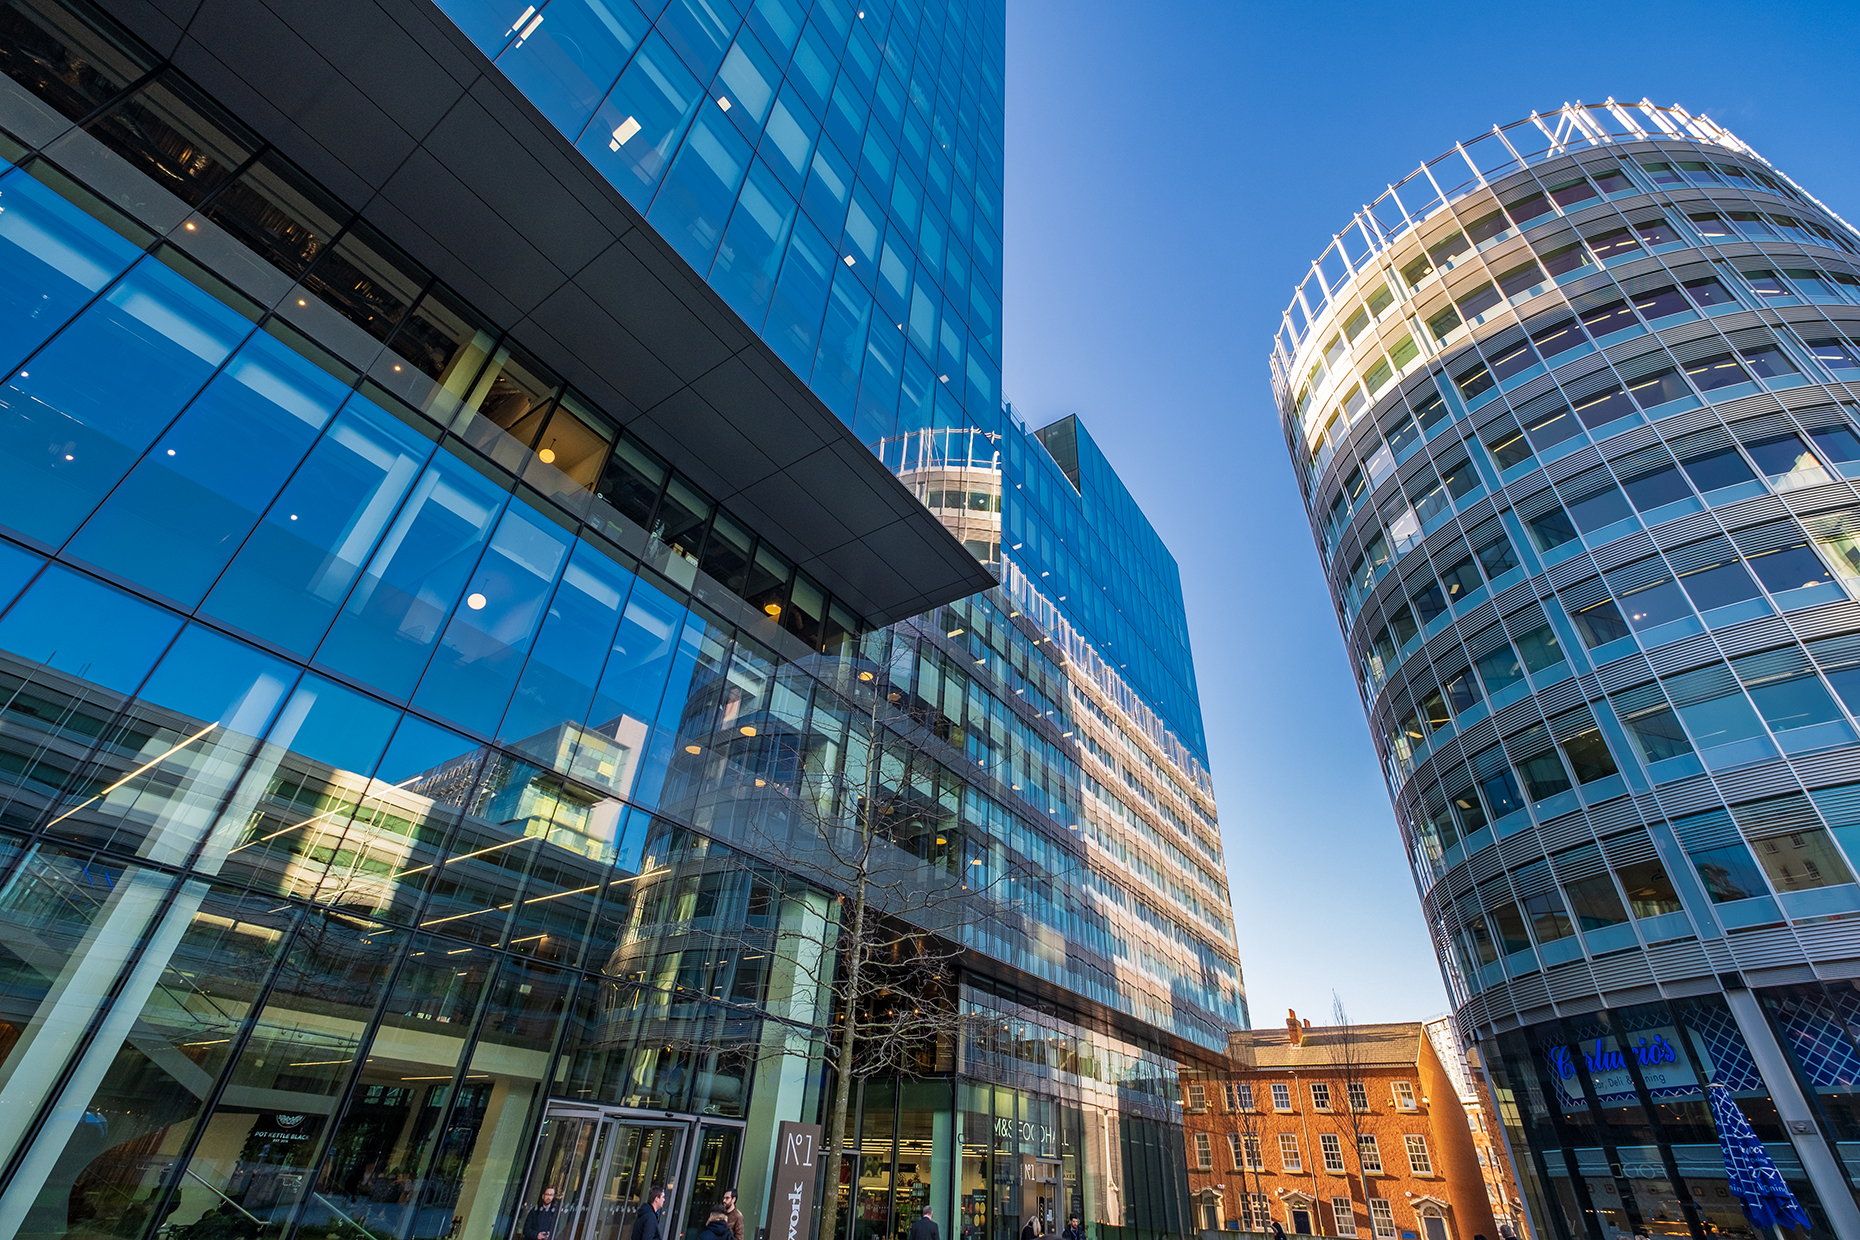 Manchester, United Kingdom - November 29, 2019: Street view of Spinningfields, a modern area was specially developed in the 2000s as a business, retail and residential development of Manchester.